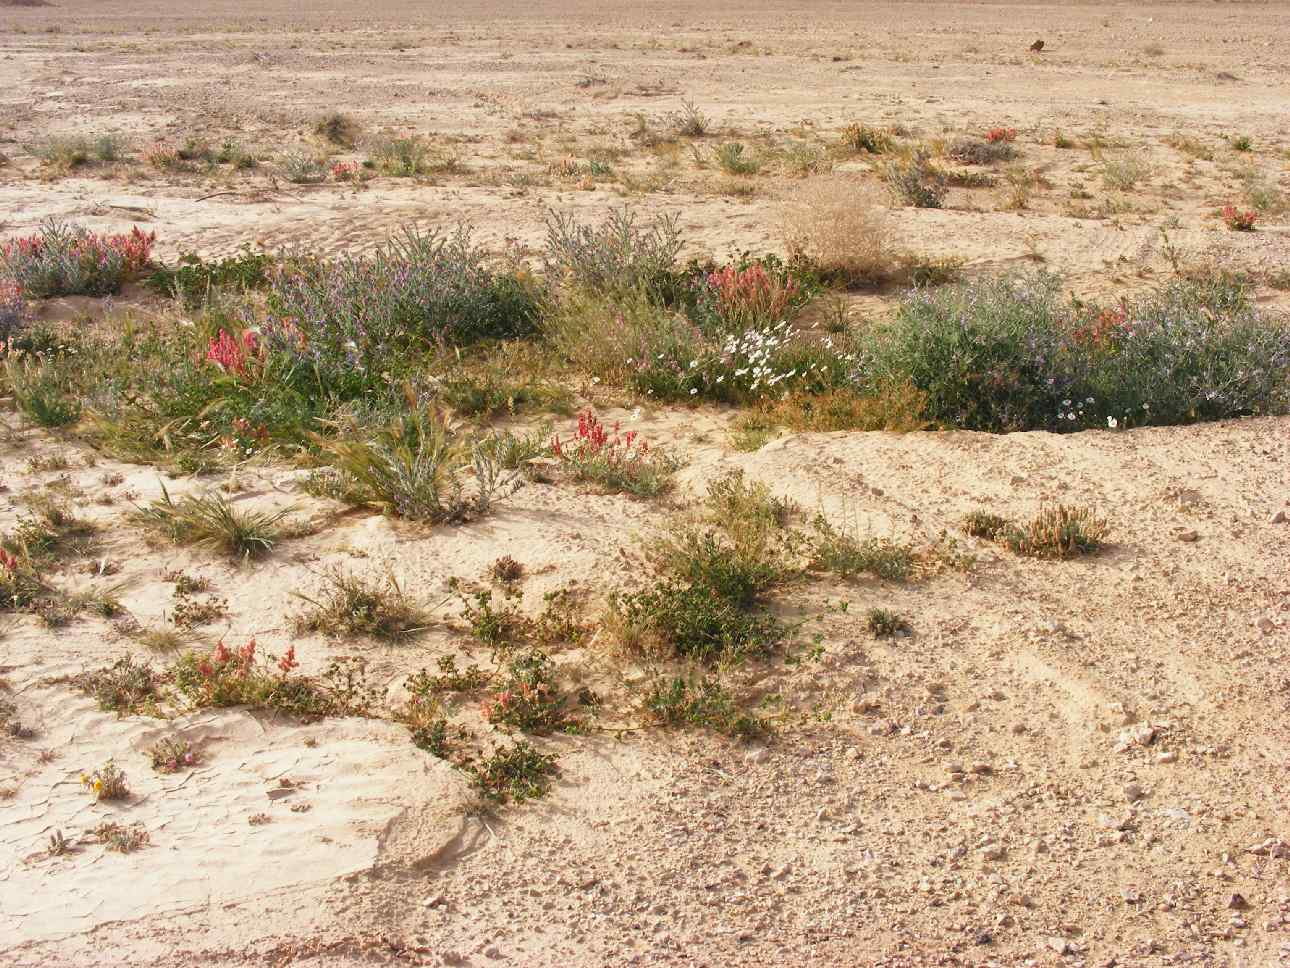 Blooming in the low spots, following 2013 Arava floods